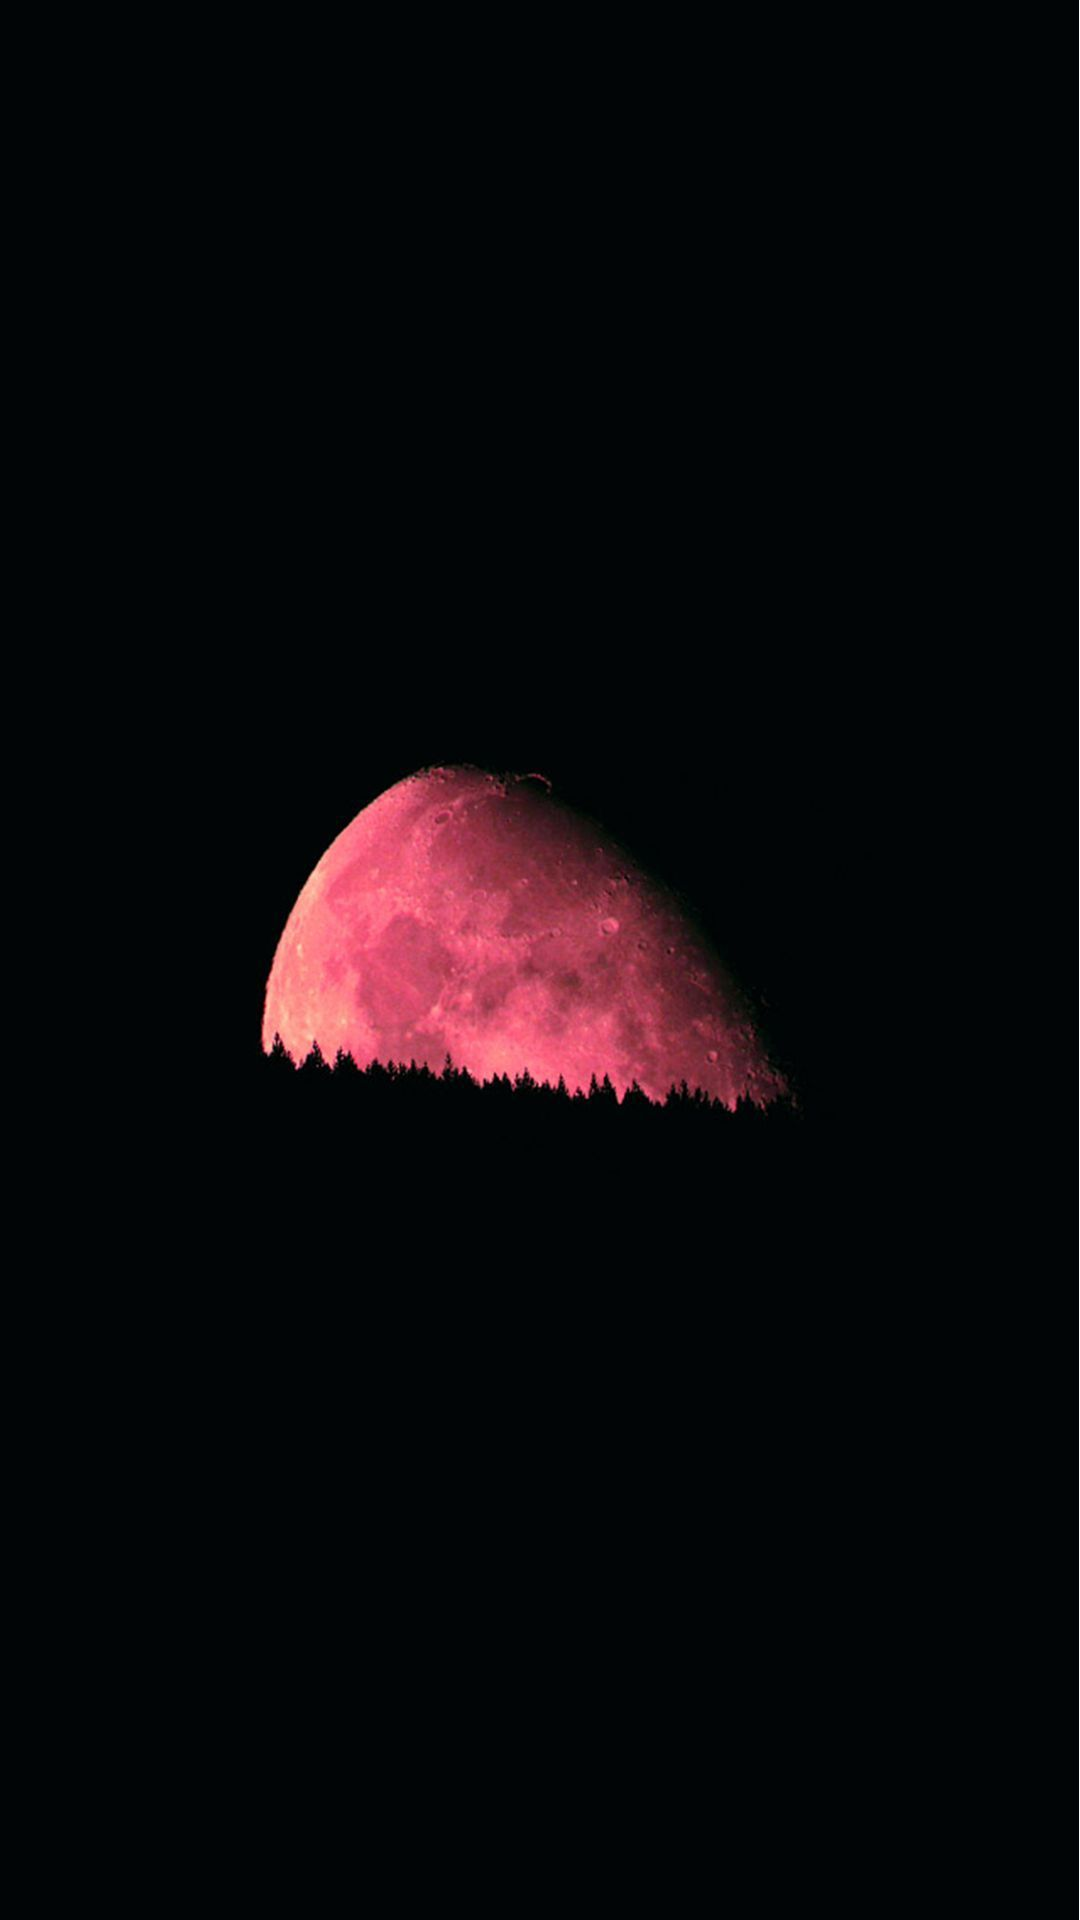 Aesthetic Moon Wallpaper Iphone ...